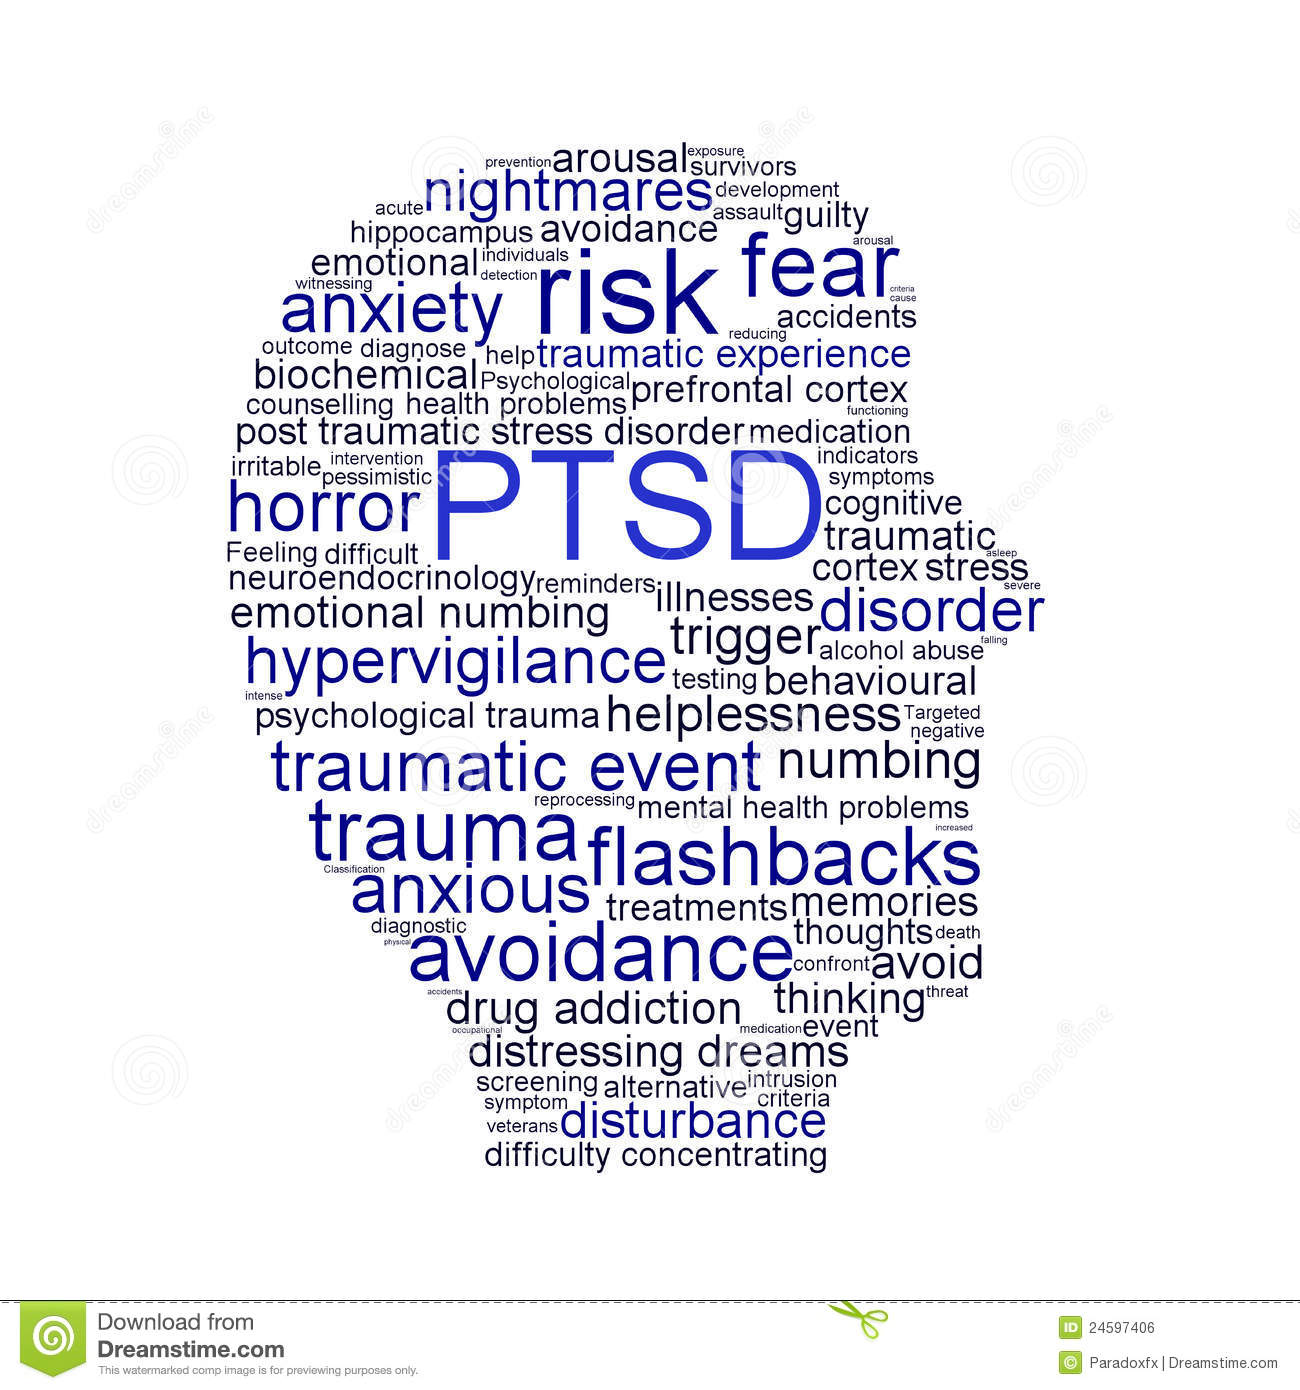 Medication Relief for Nightmares Associated With PTSD